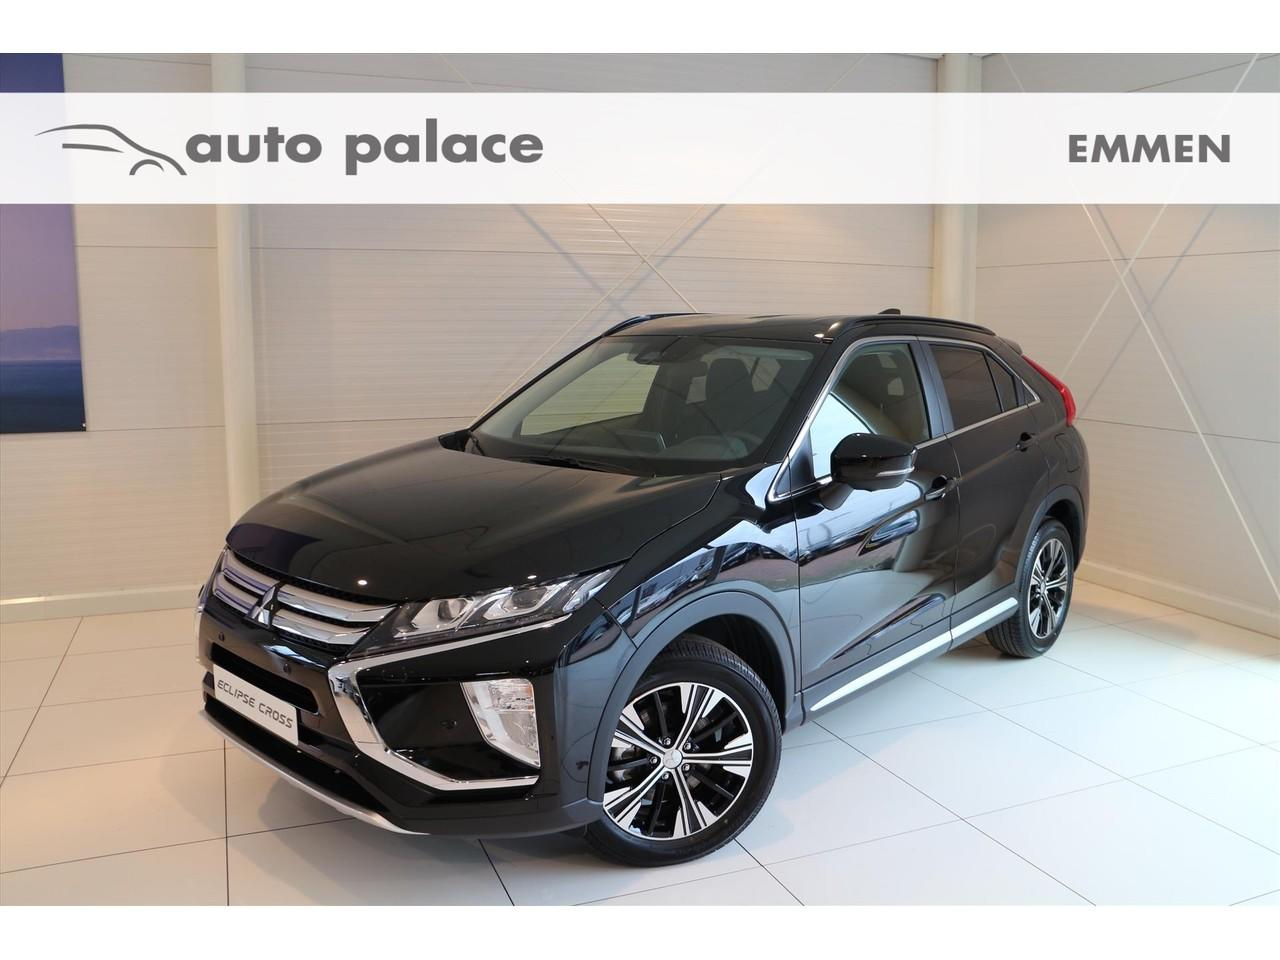 Mitsubishi Eclipse cross 1.5 cvt cleartec first edition